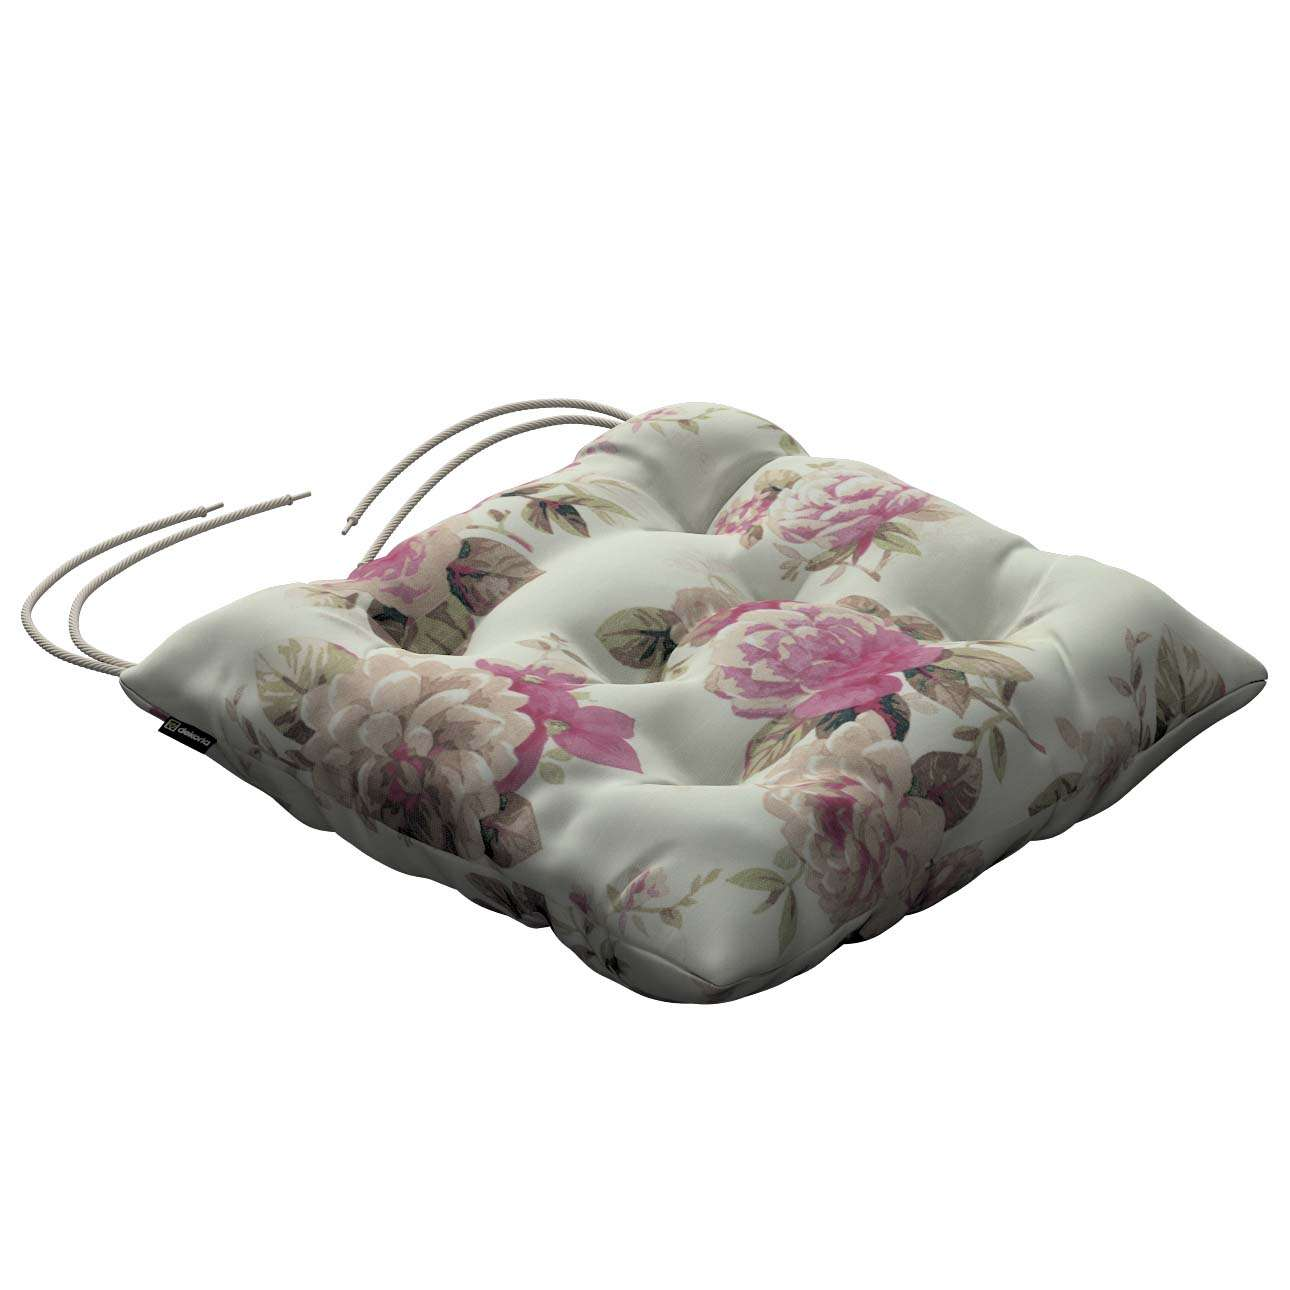 Jacek seat pad with ties 40 x 40 x 8 cm (16 x 16 x 3 inch) in collection Mirella, fabric: 141-07